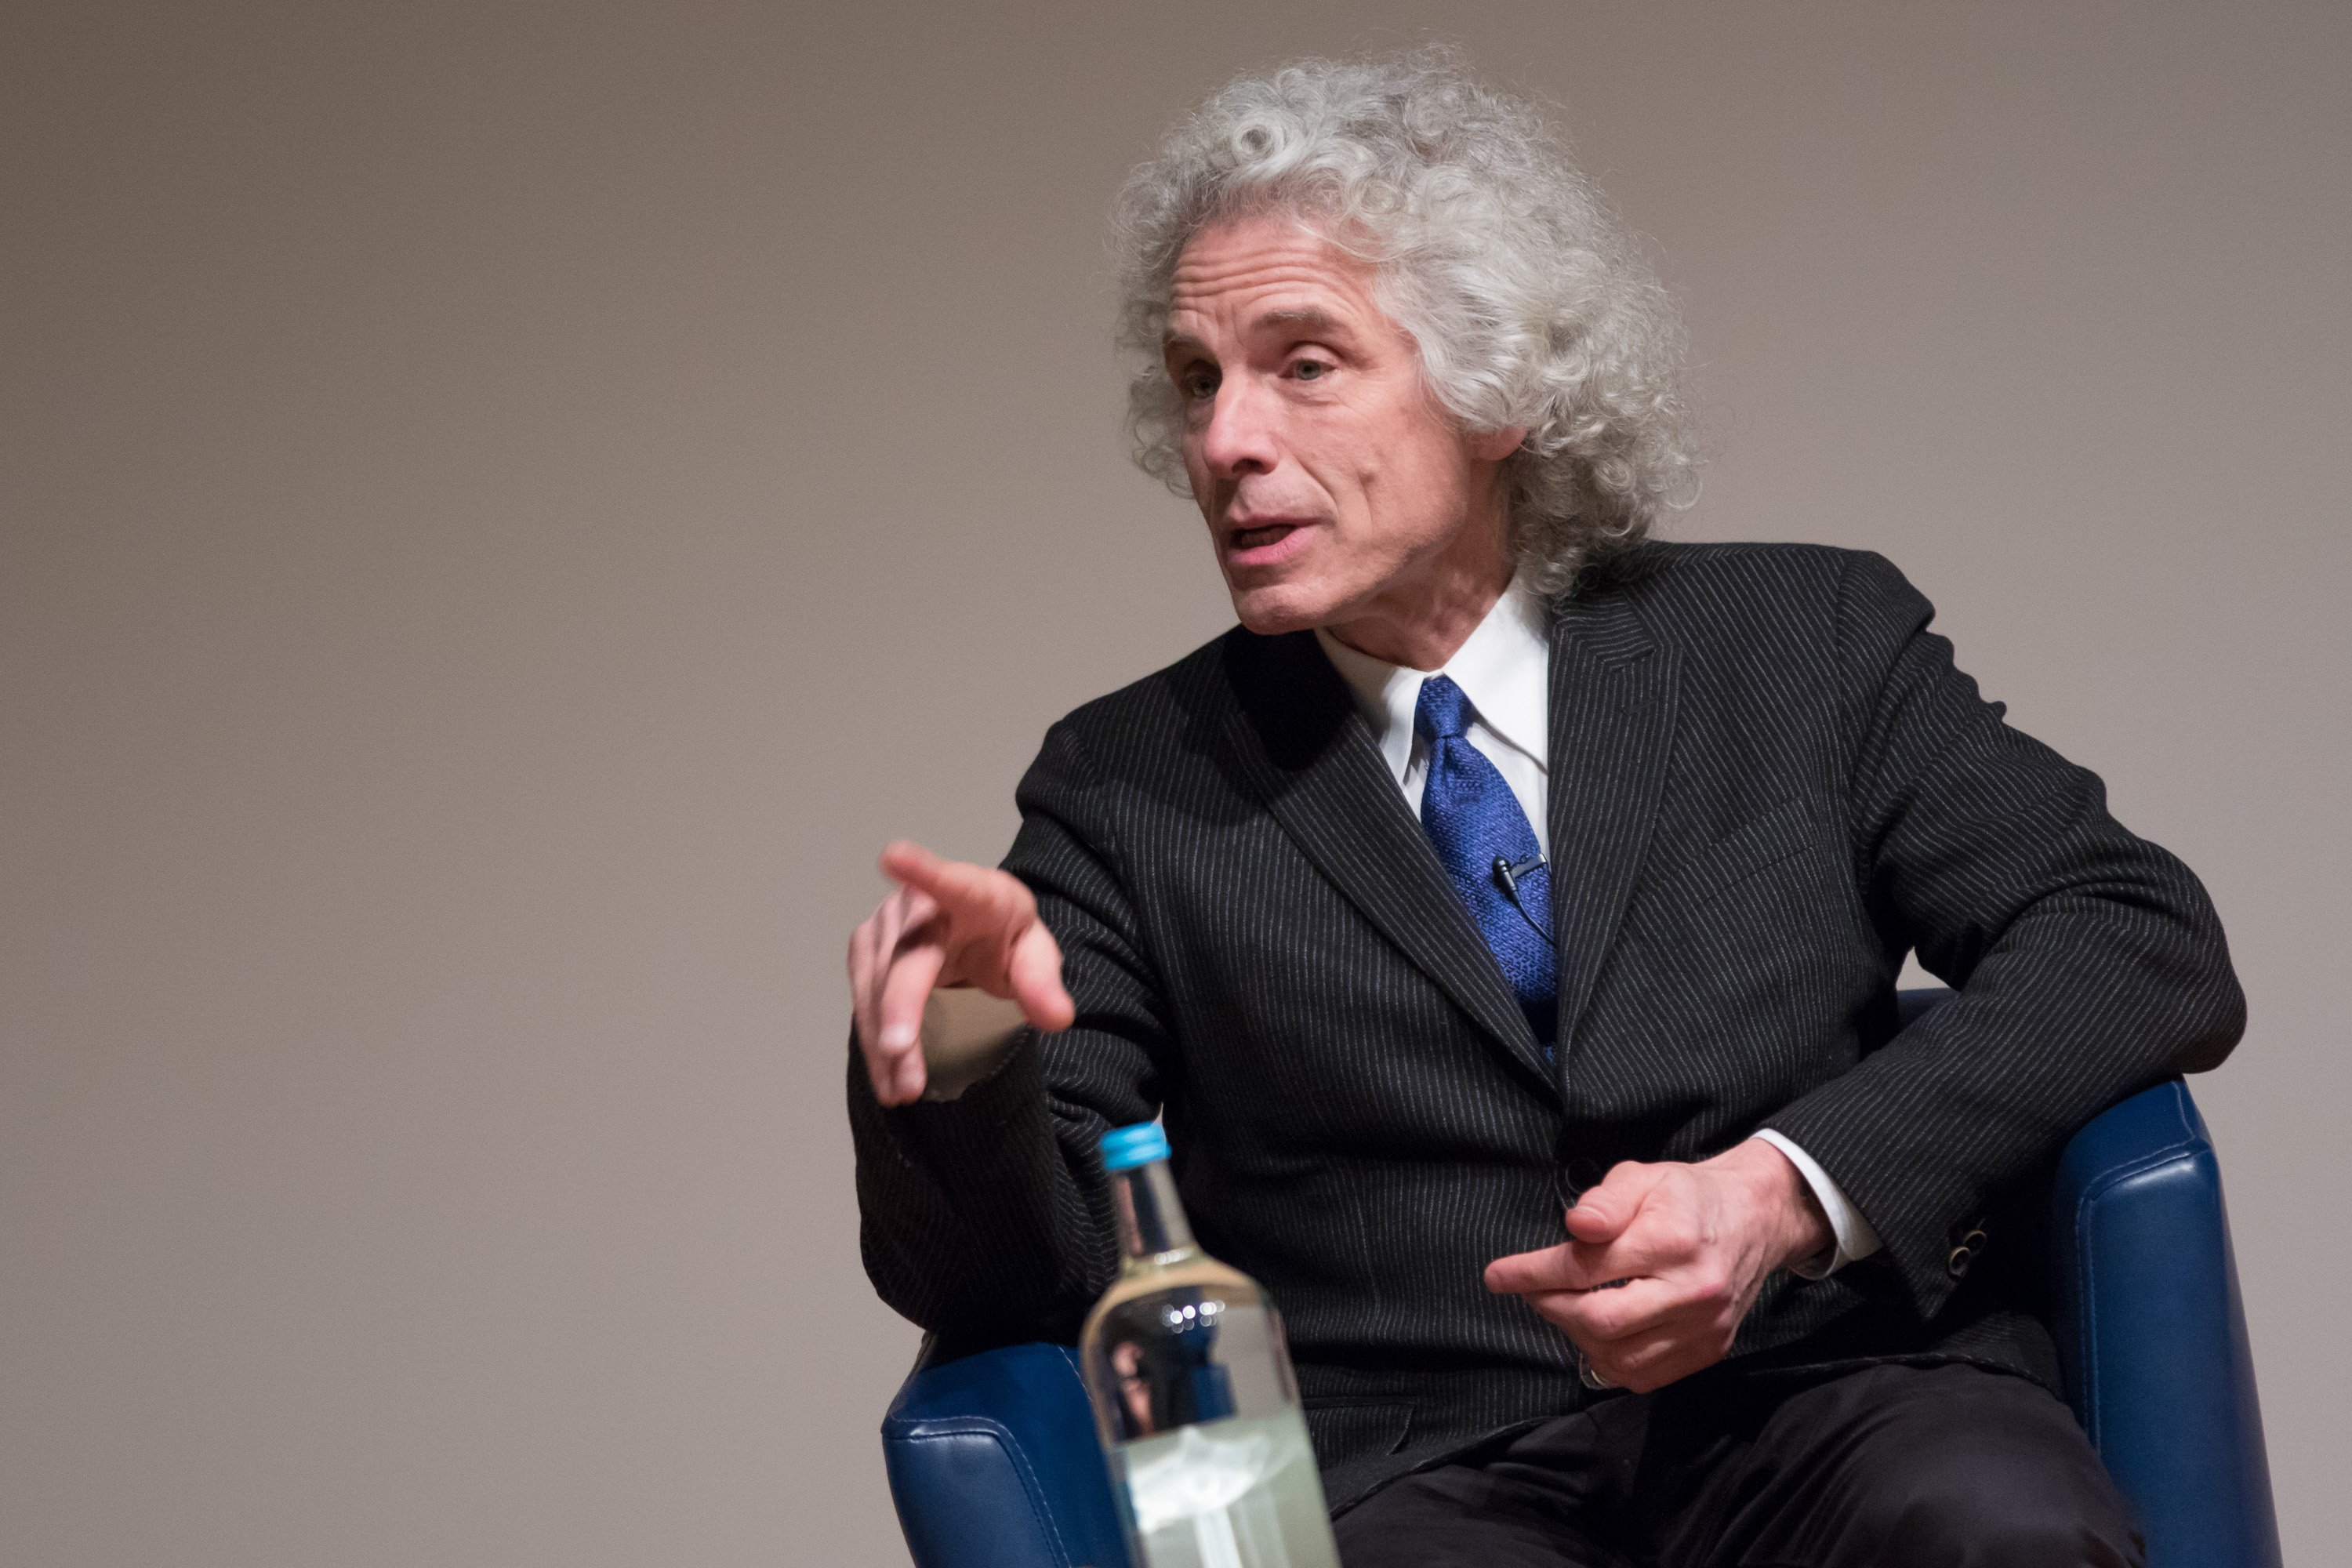 Steven Pinker during a lecture for Humanists UK